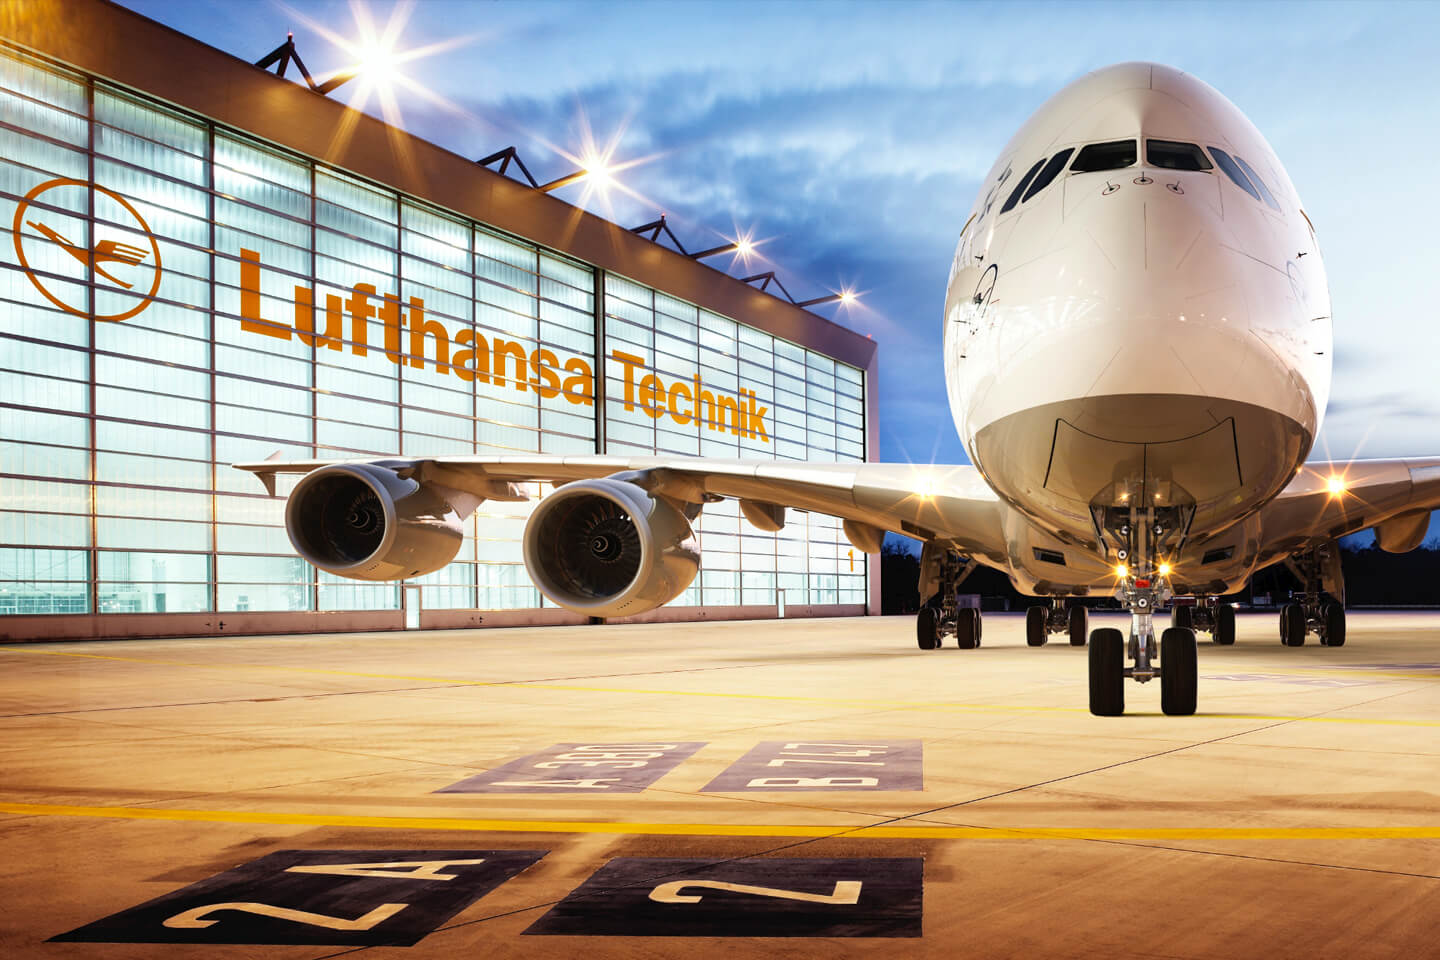 Lufthansa Technik Germany